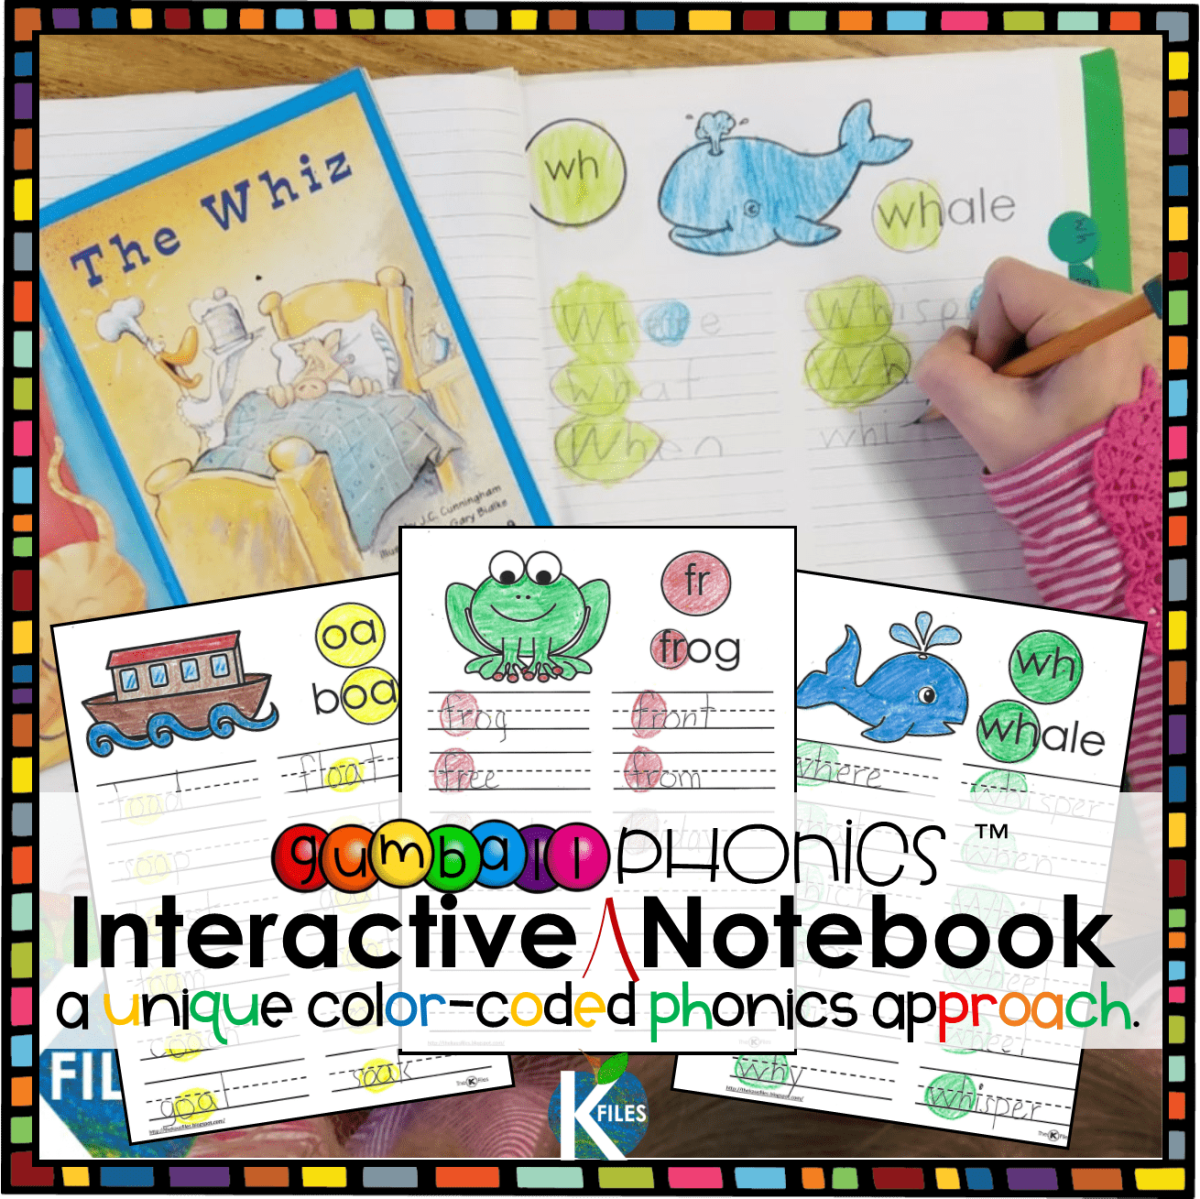 Our Interactive Gumball Phonics™ Notebook